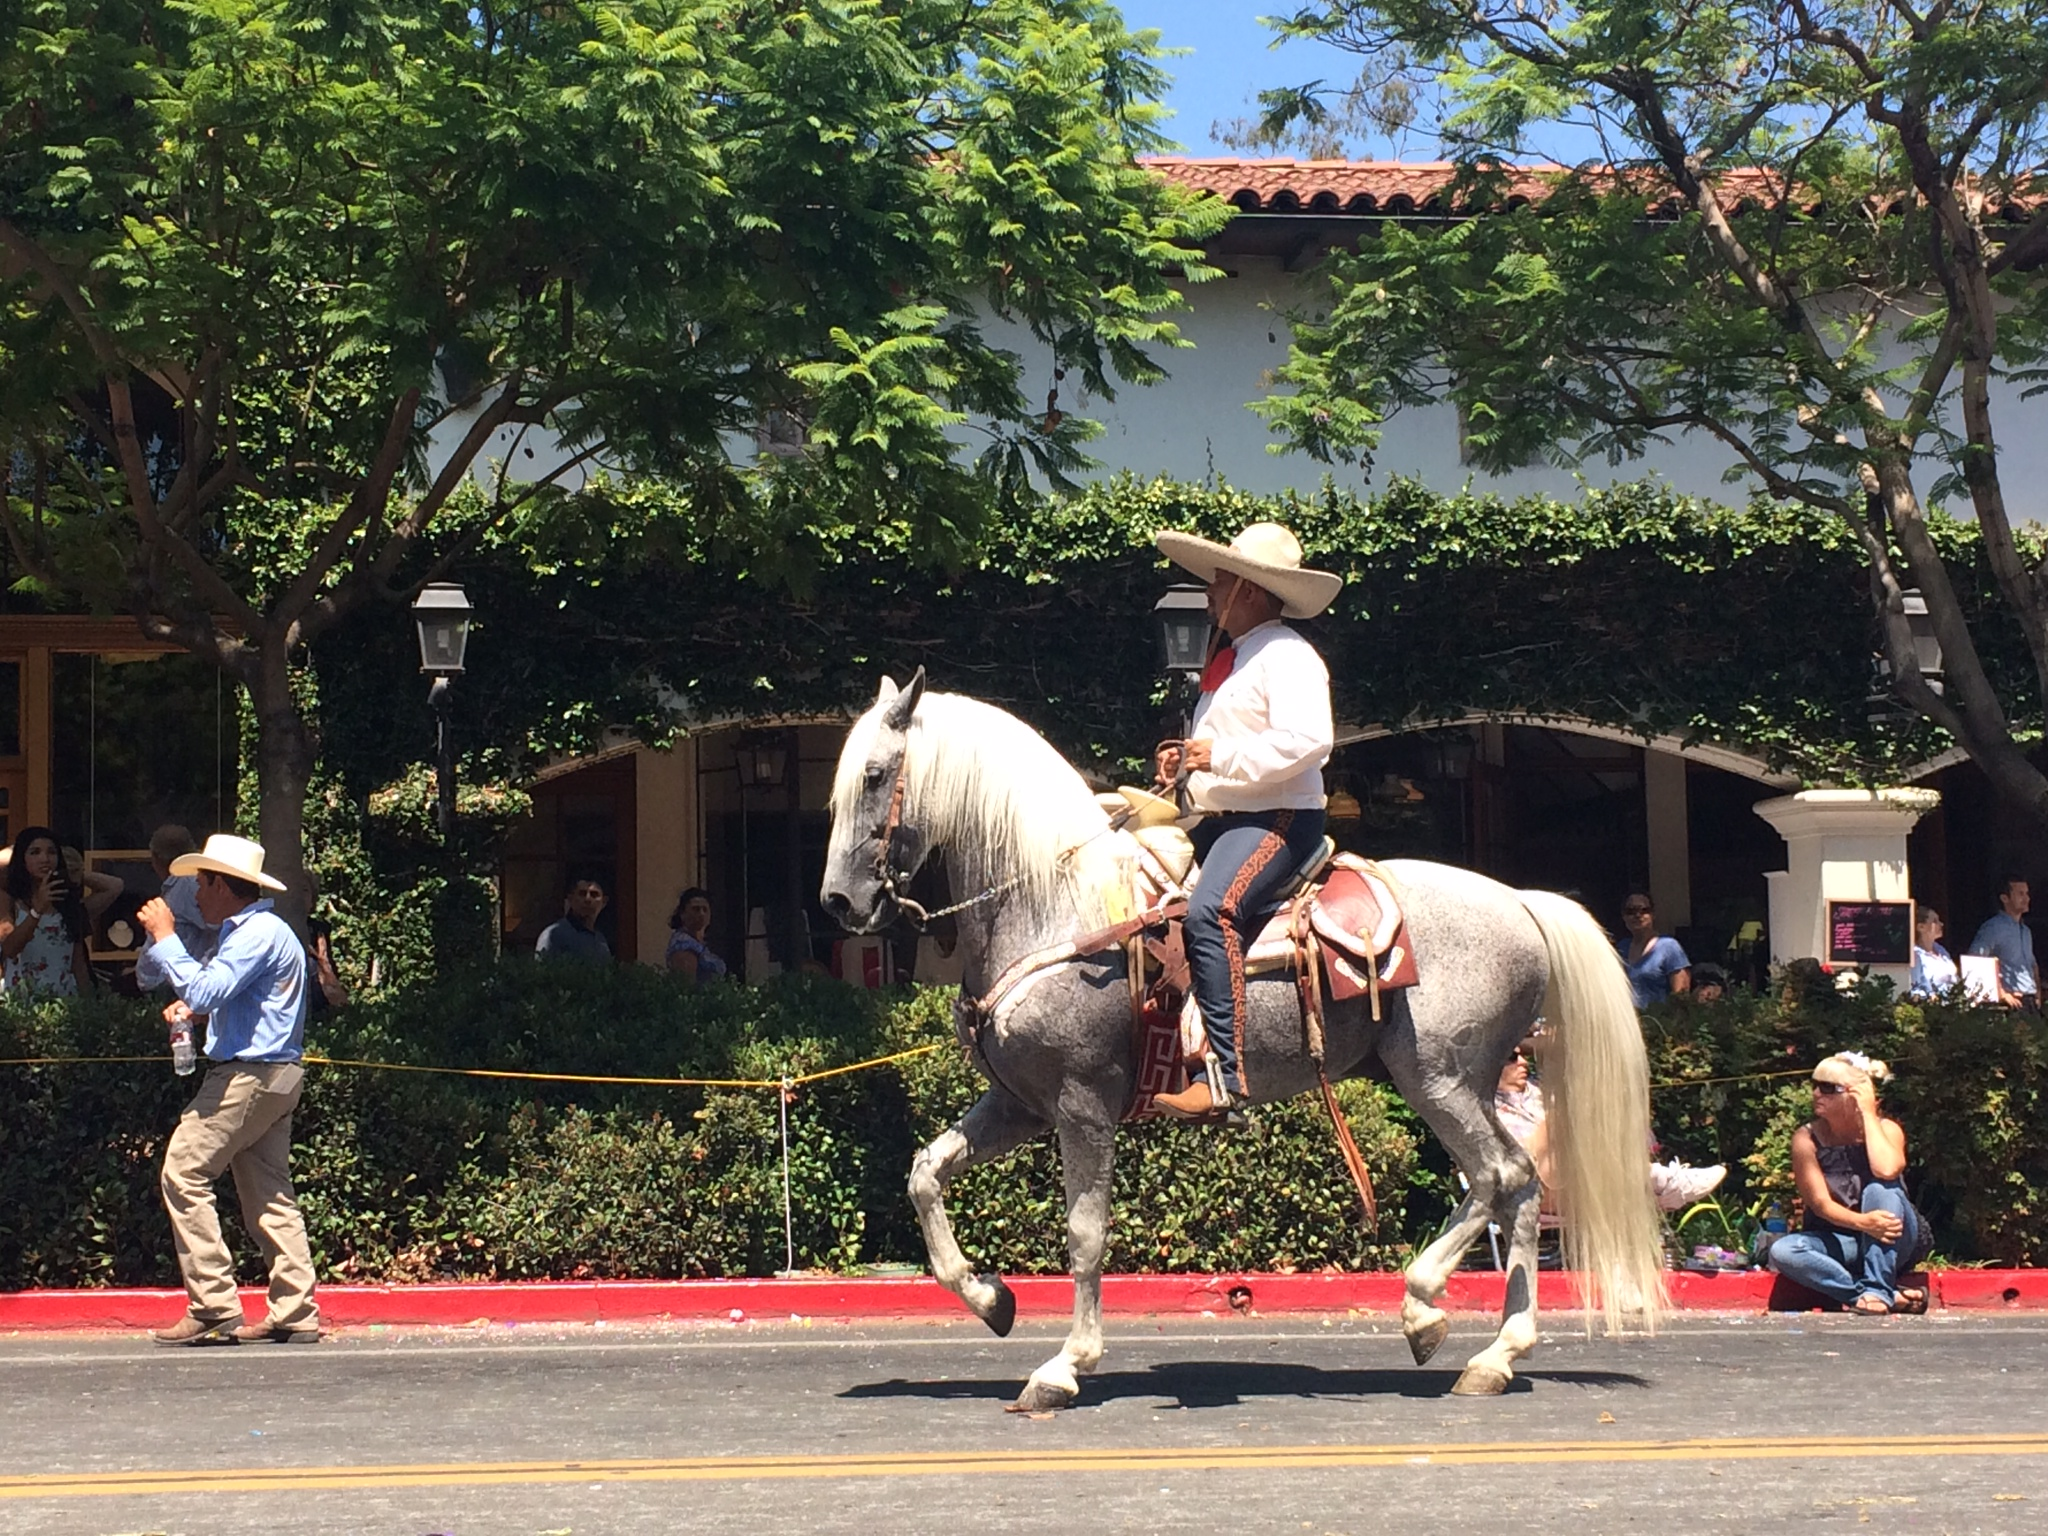 Ranchero horseback rider on State Street in the largest horse parade in North America during La Fiesta